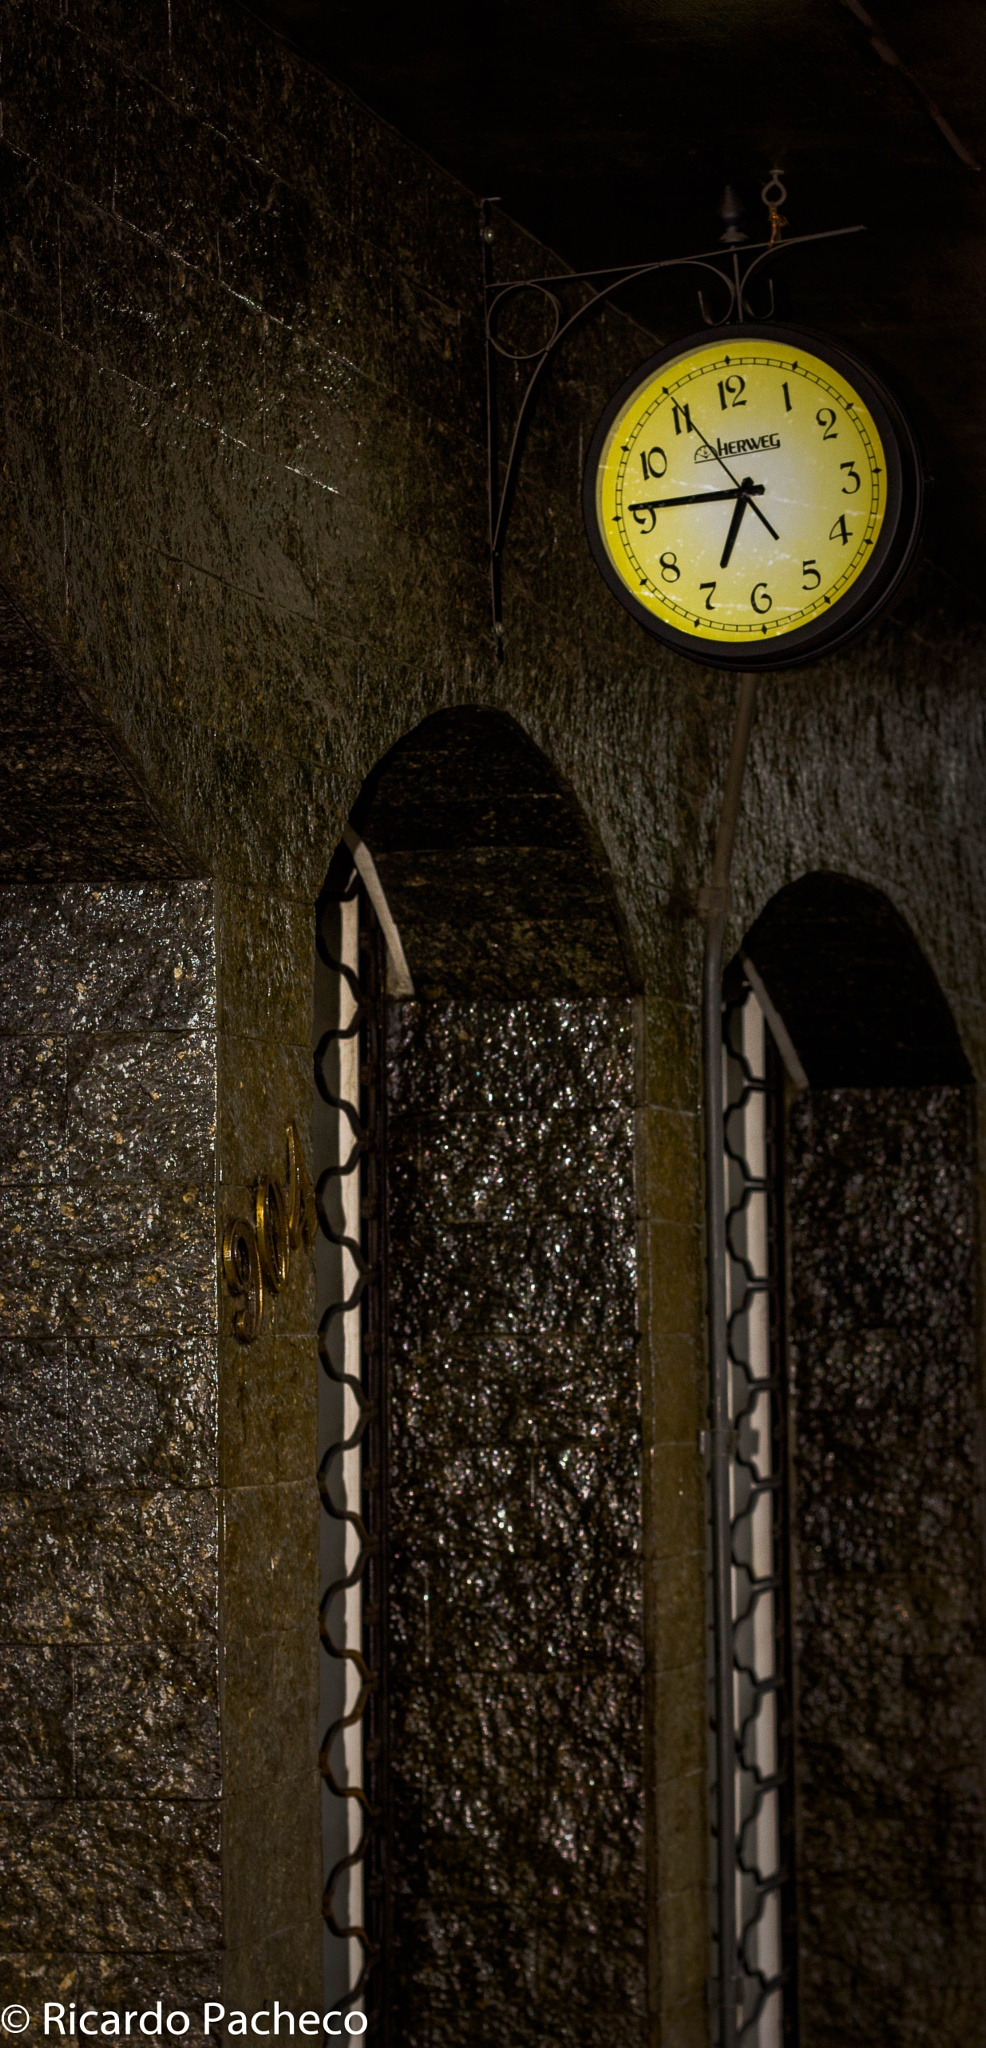 The Time is running by Ricardo Pacheco